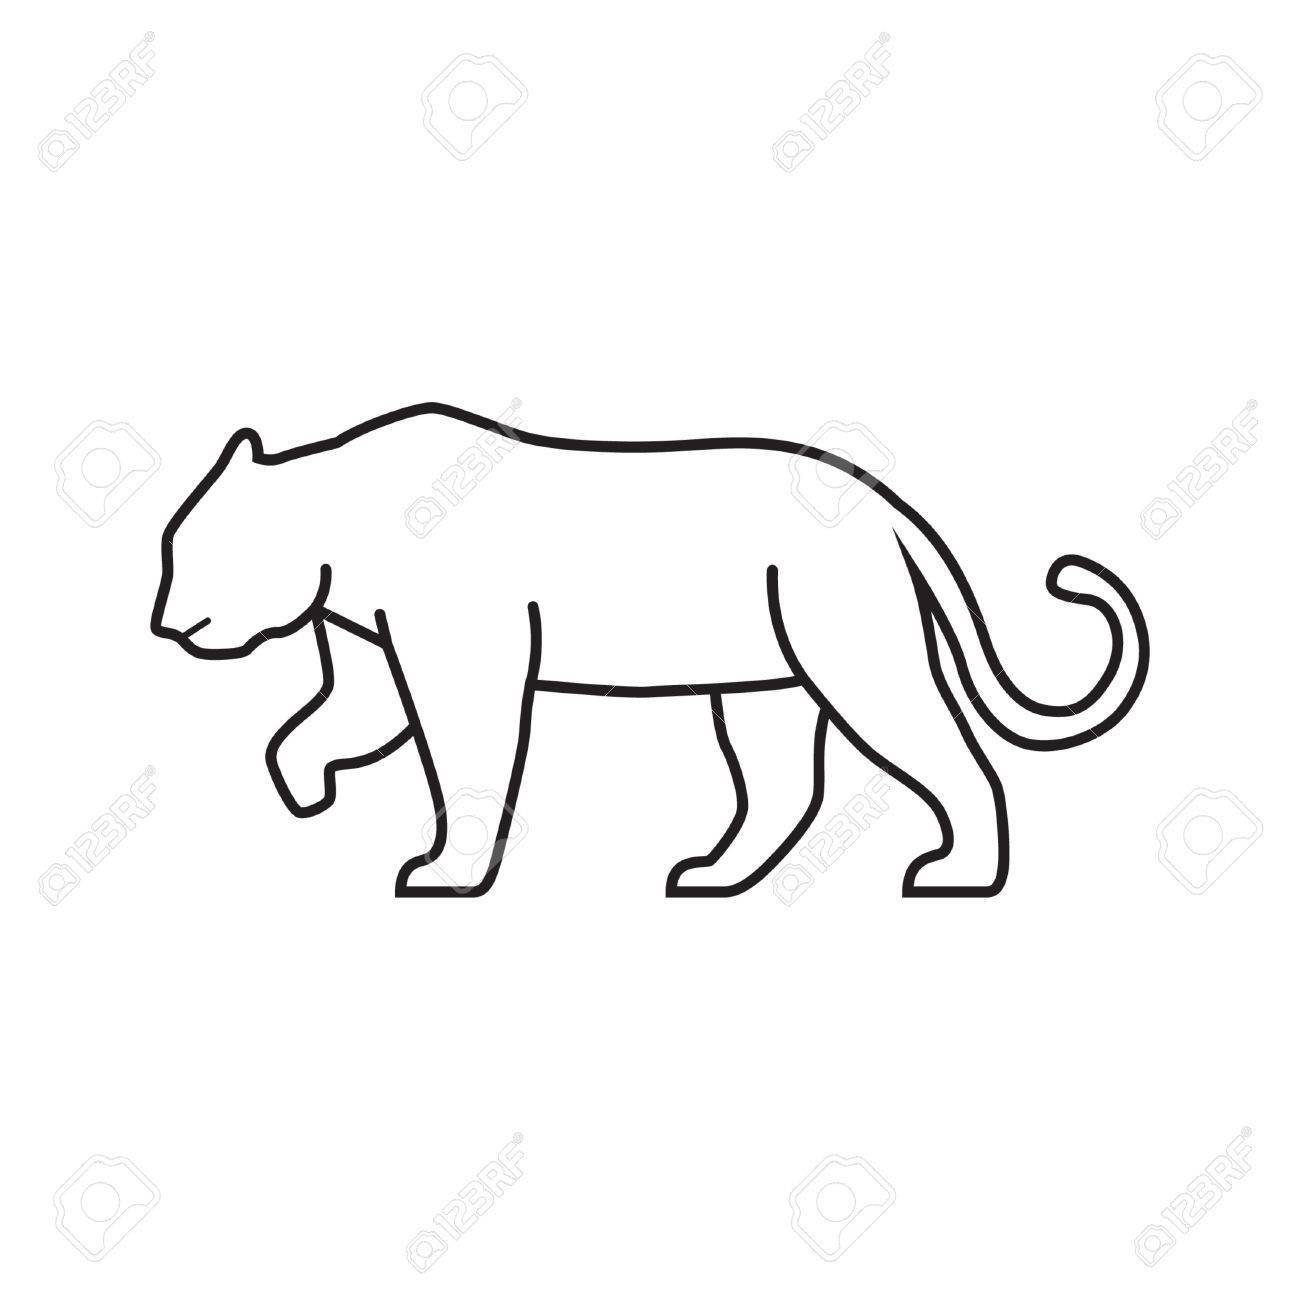 Mountain lion clipart black and white clipart royalty free download Mountain lion clipart black and white 1 » Clipart Portal clipart royalty free download